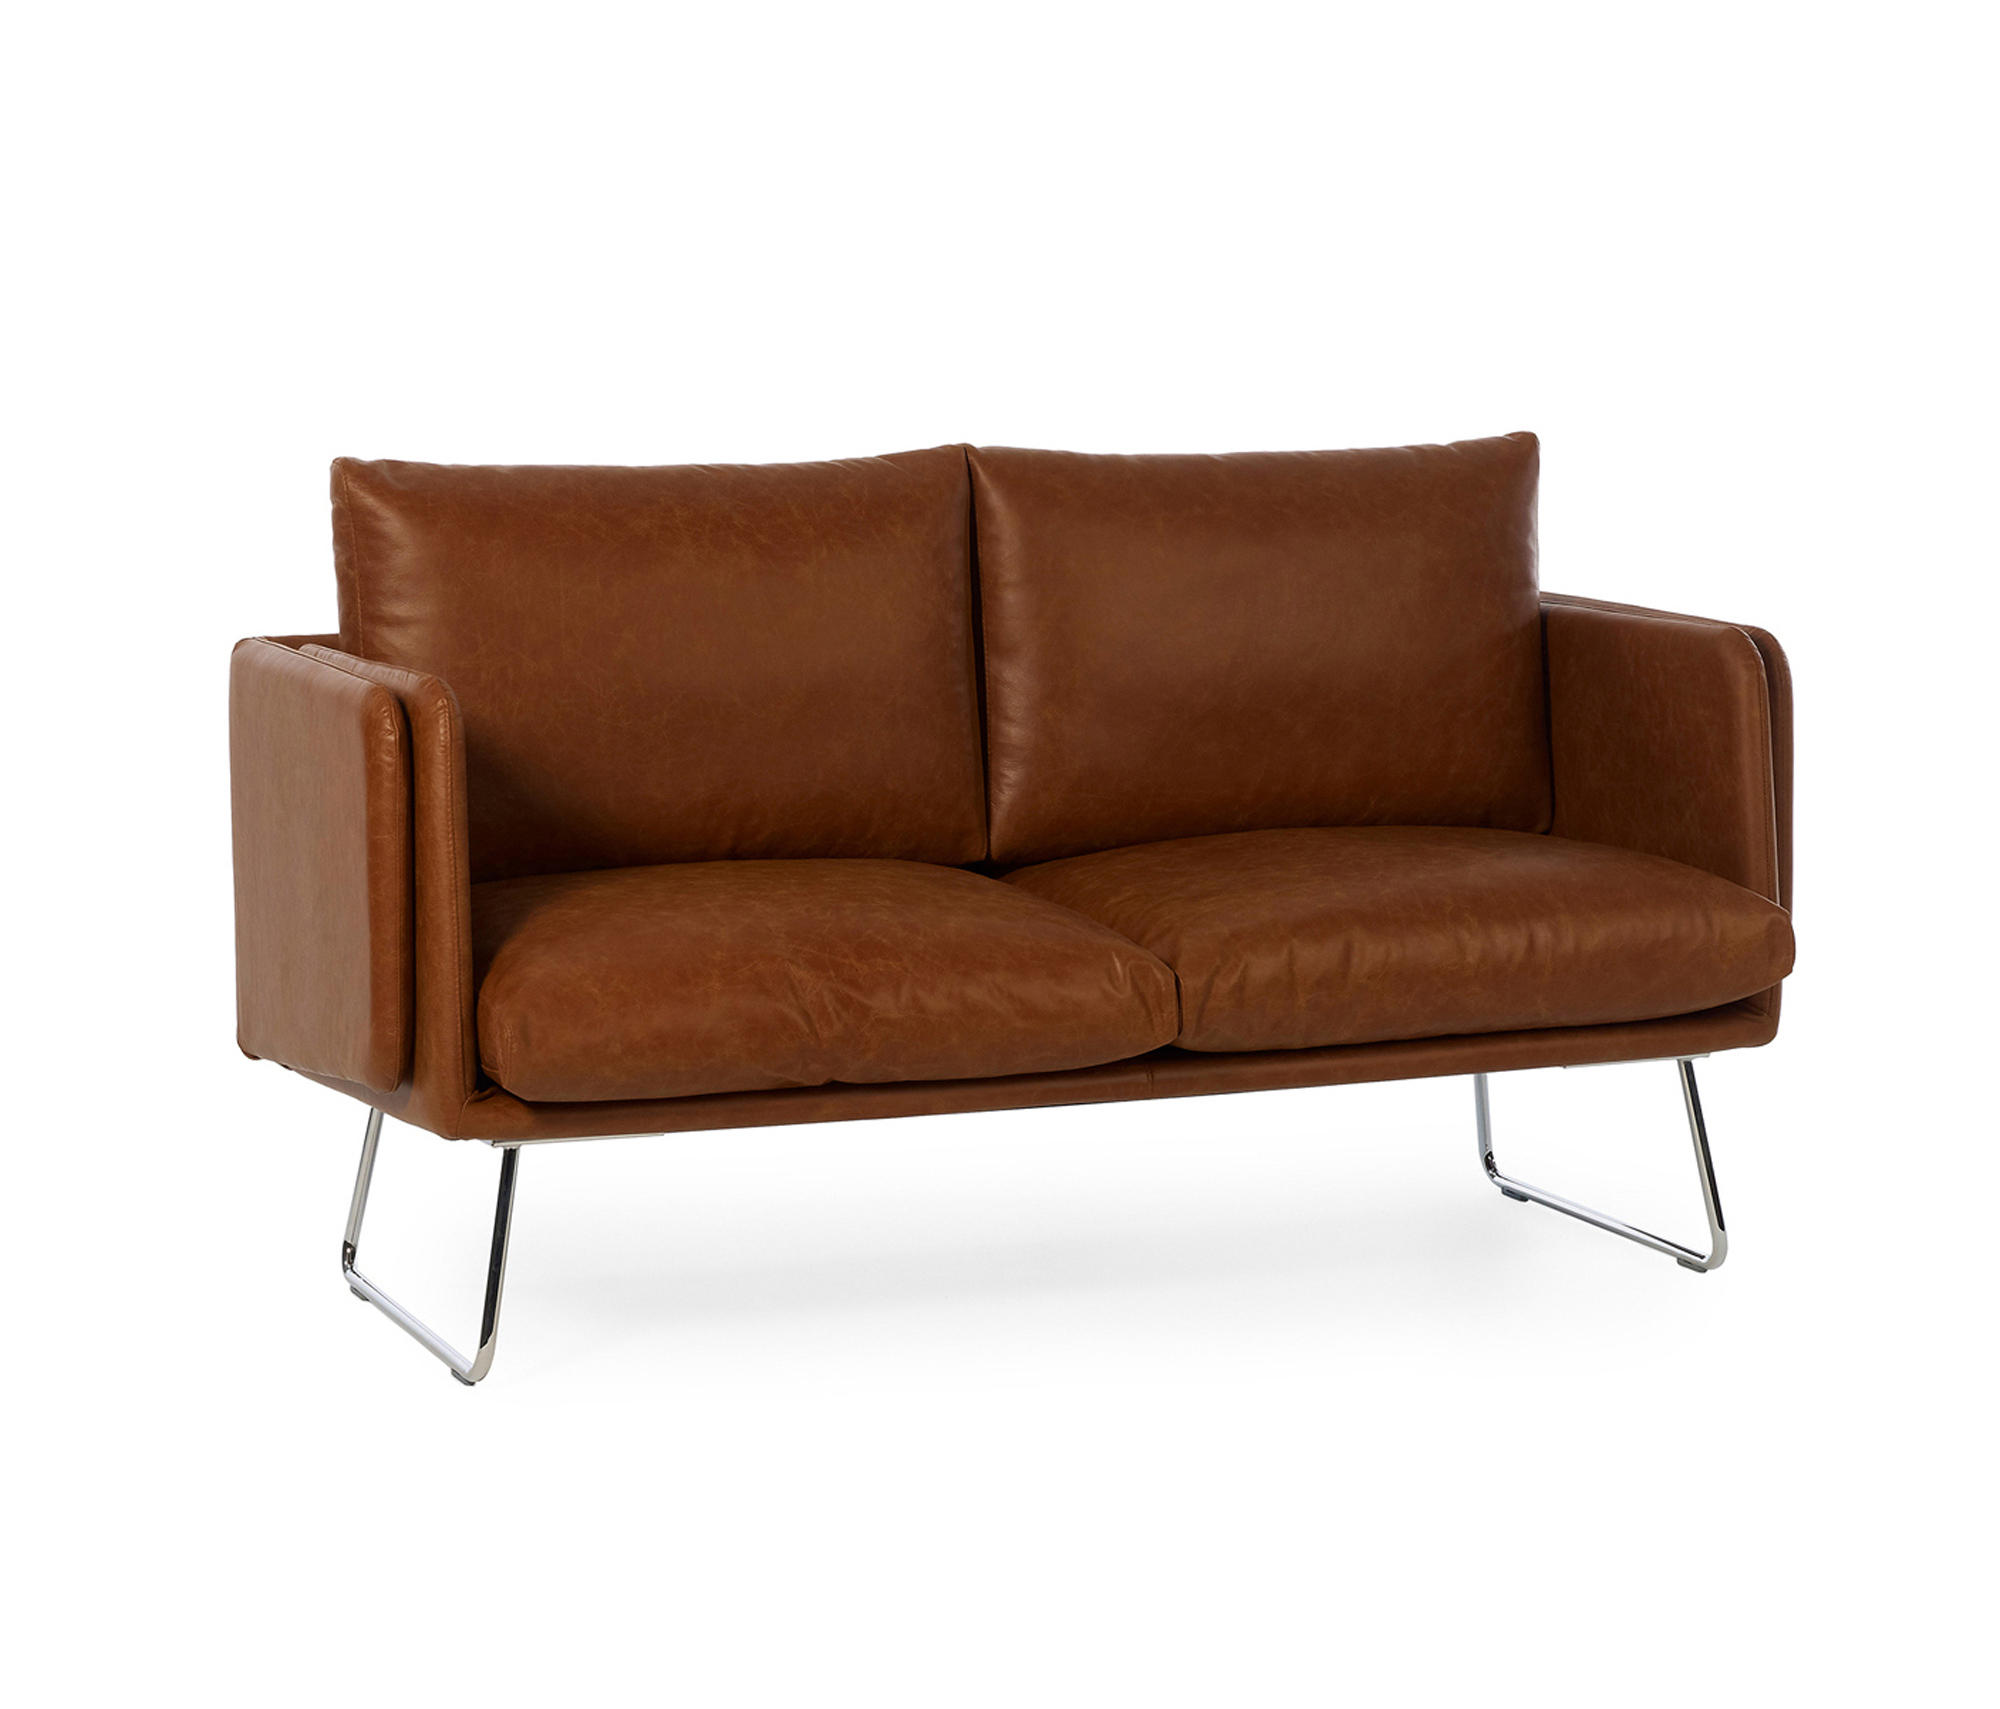 Spongy sofa lounge sofas from rs barcelona architonic for Sofas 4 plazas barcelona